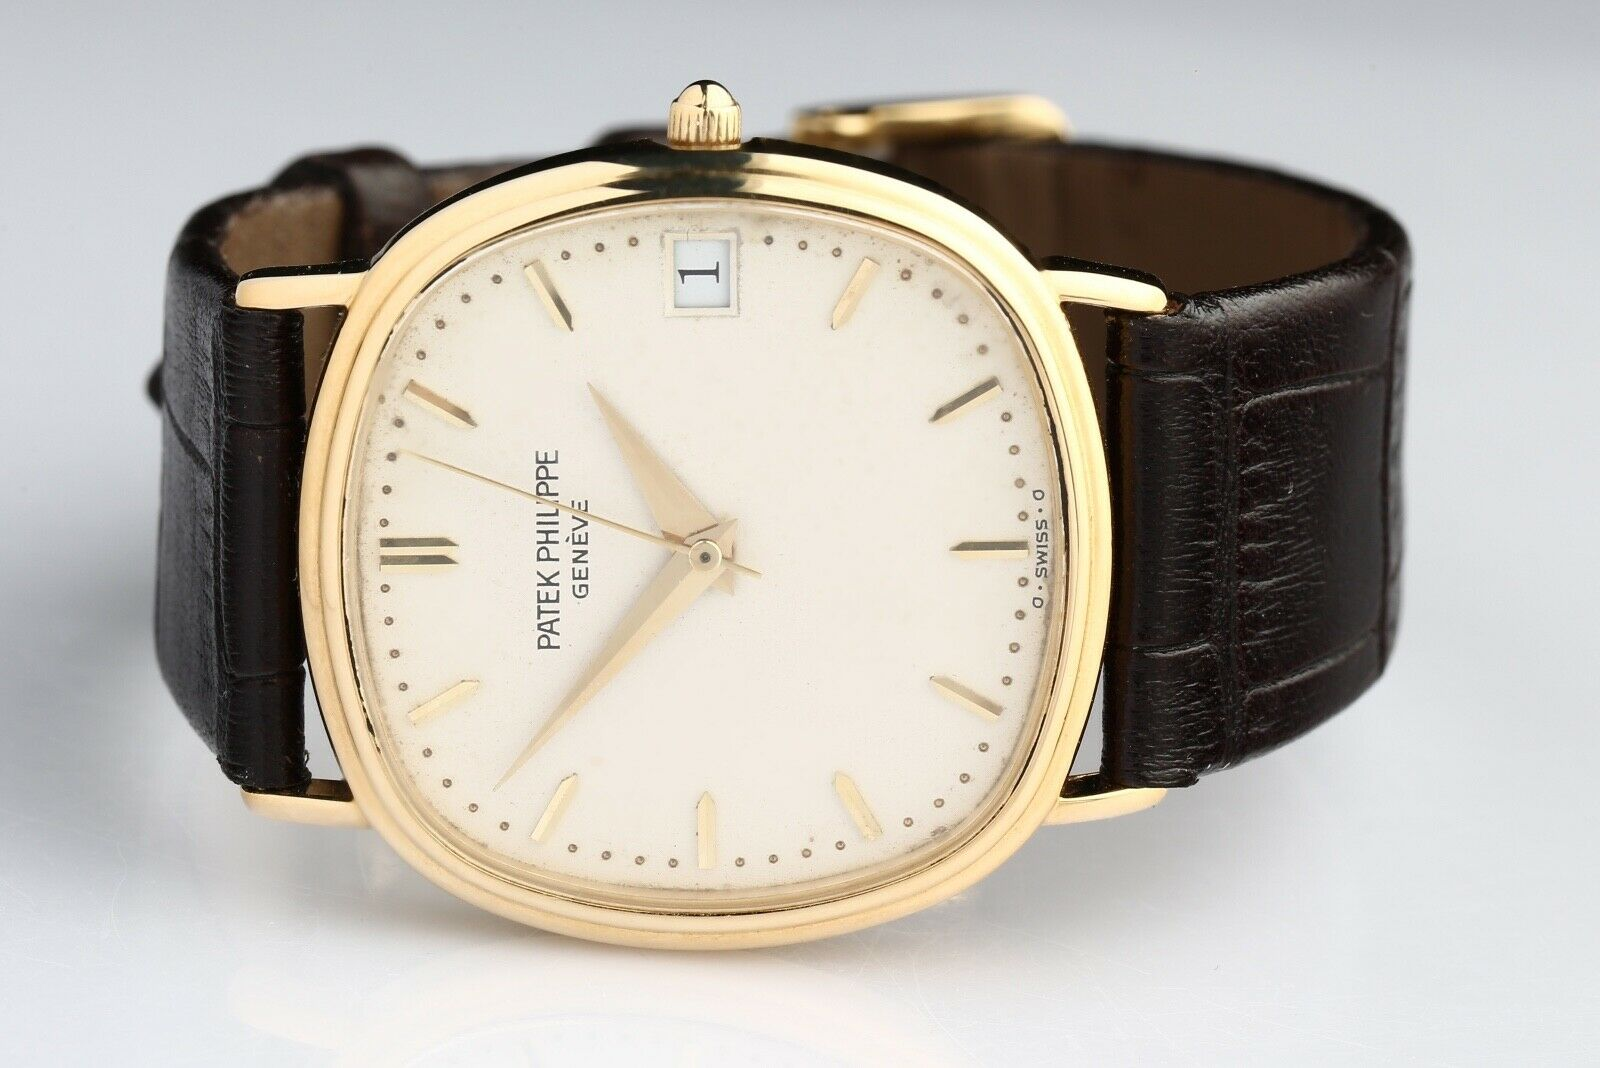 Patek Philippe Ellipse Ref# 3737 Automatic 18k Yellow Gold Wristwatch - watch picture 1